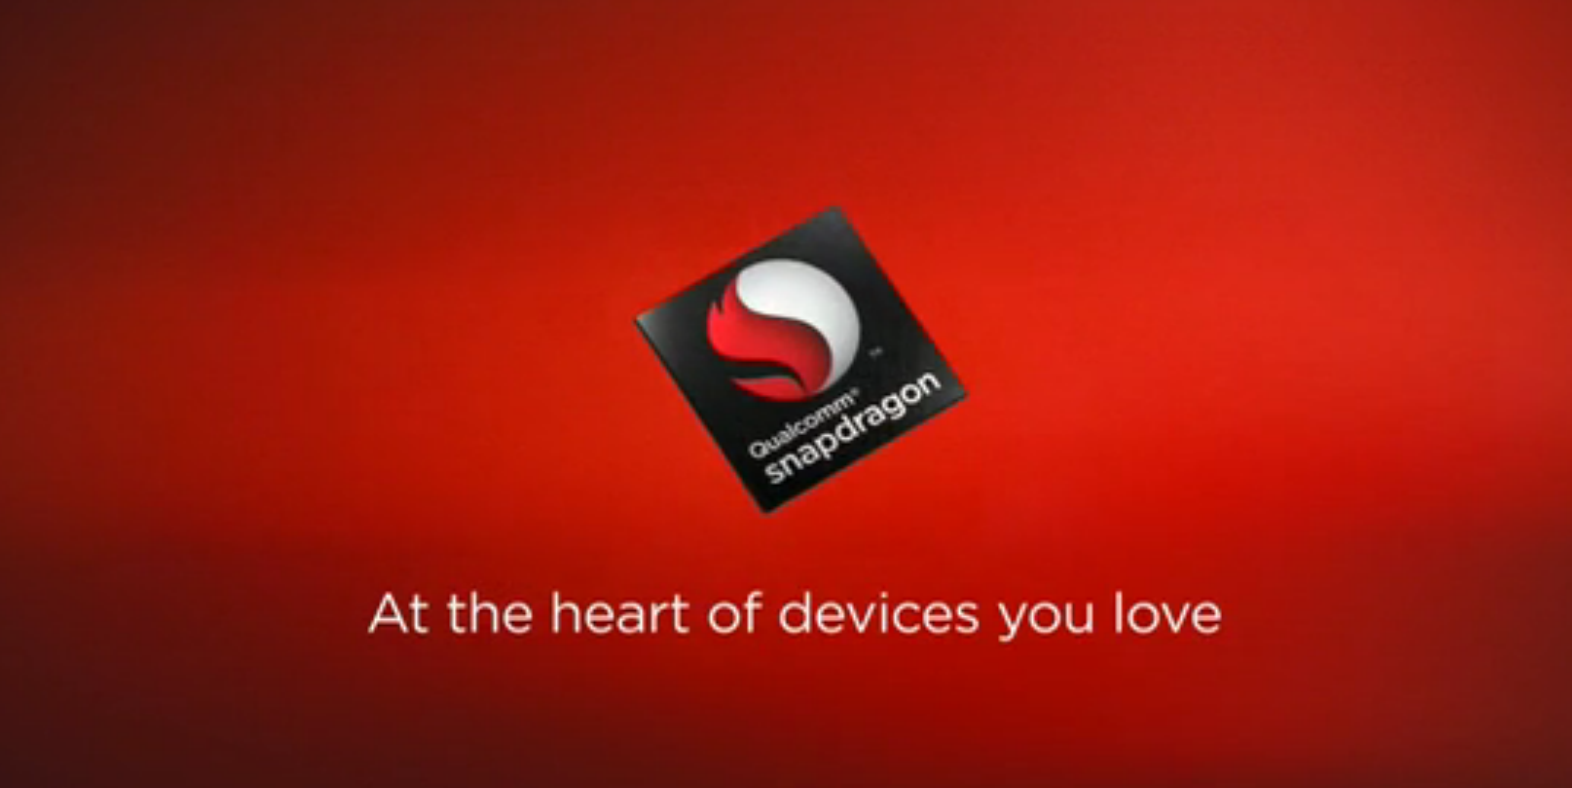 Qualcomm-snapdragon-8.png | HD Wallpapers, HD images, HD ... Qualcomm Snapdragon Wallpaper